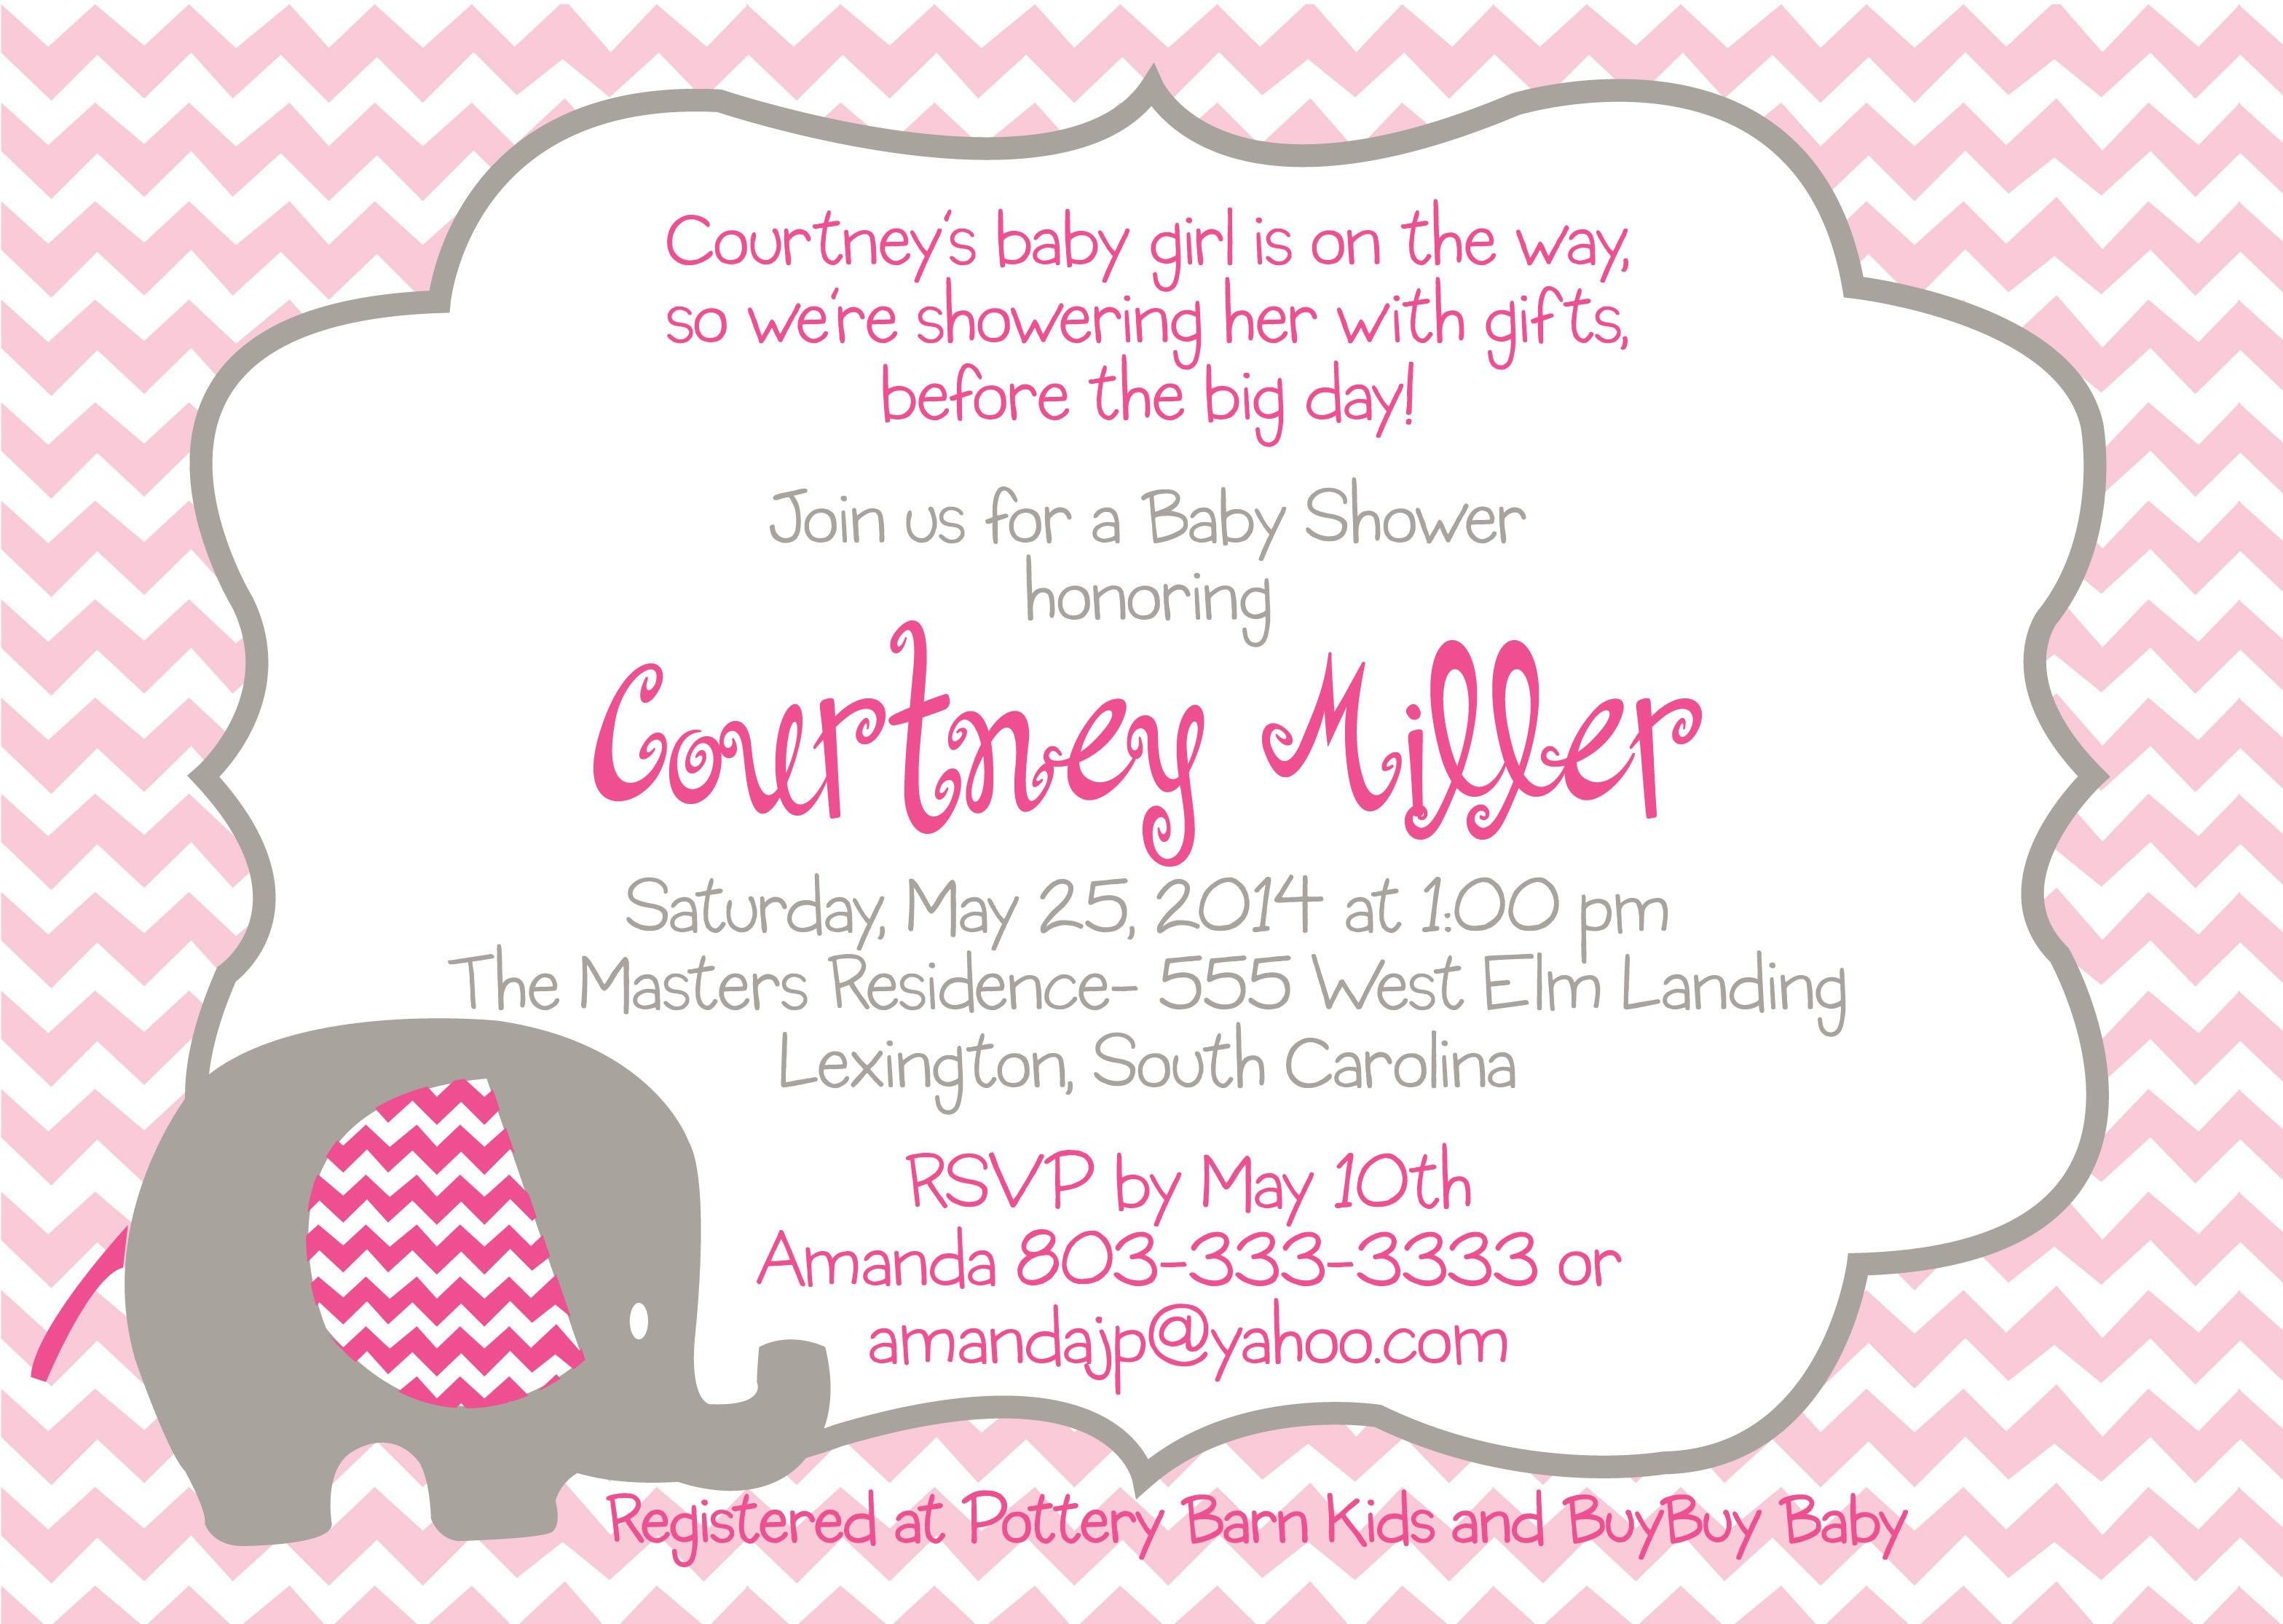 Full Size of Baby Shower:inspirational Elephant Baby Shower Invitations Photo Concepts Elephant Baby Shower Invitations As Well As Creative Baby Shower Gifts With Baby Shower Flower Wall Plus Baby Shower Gift Bags Together With Baby Shower Messages